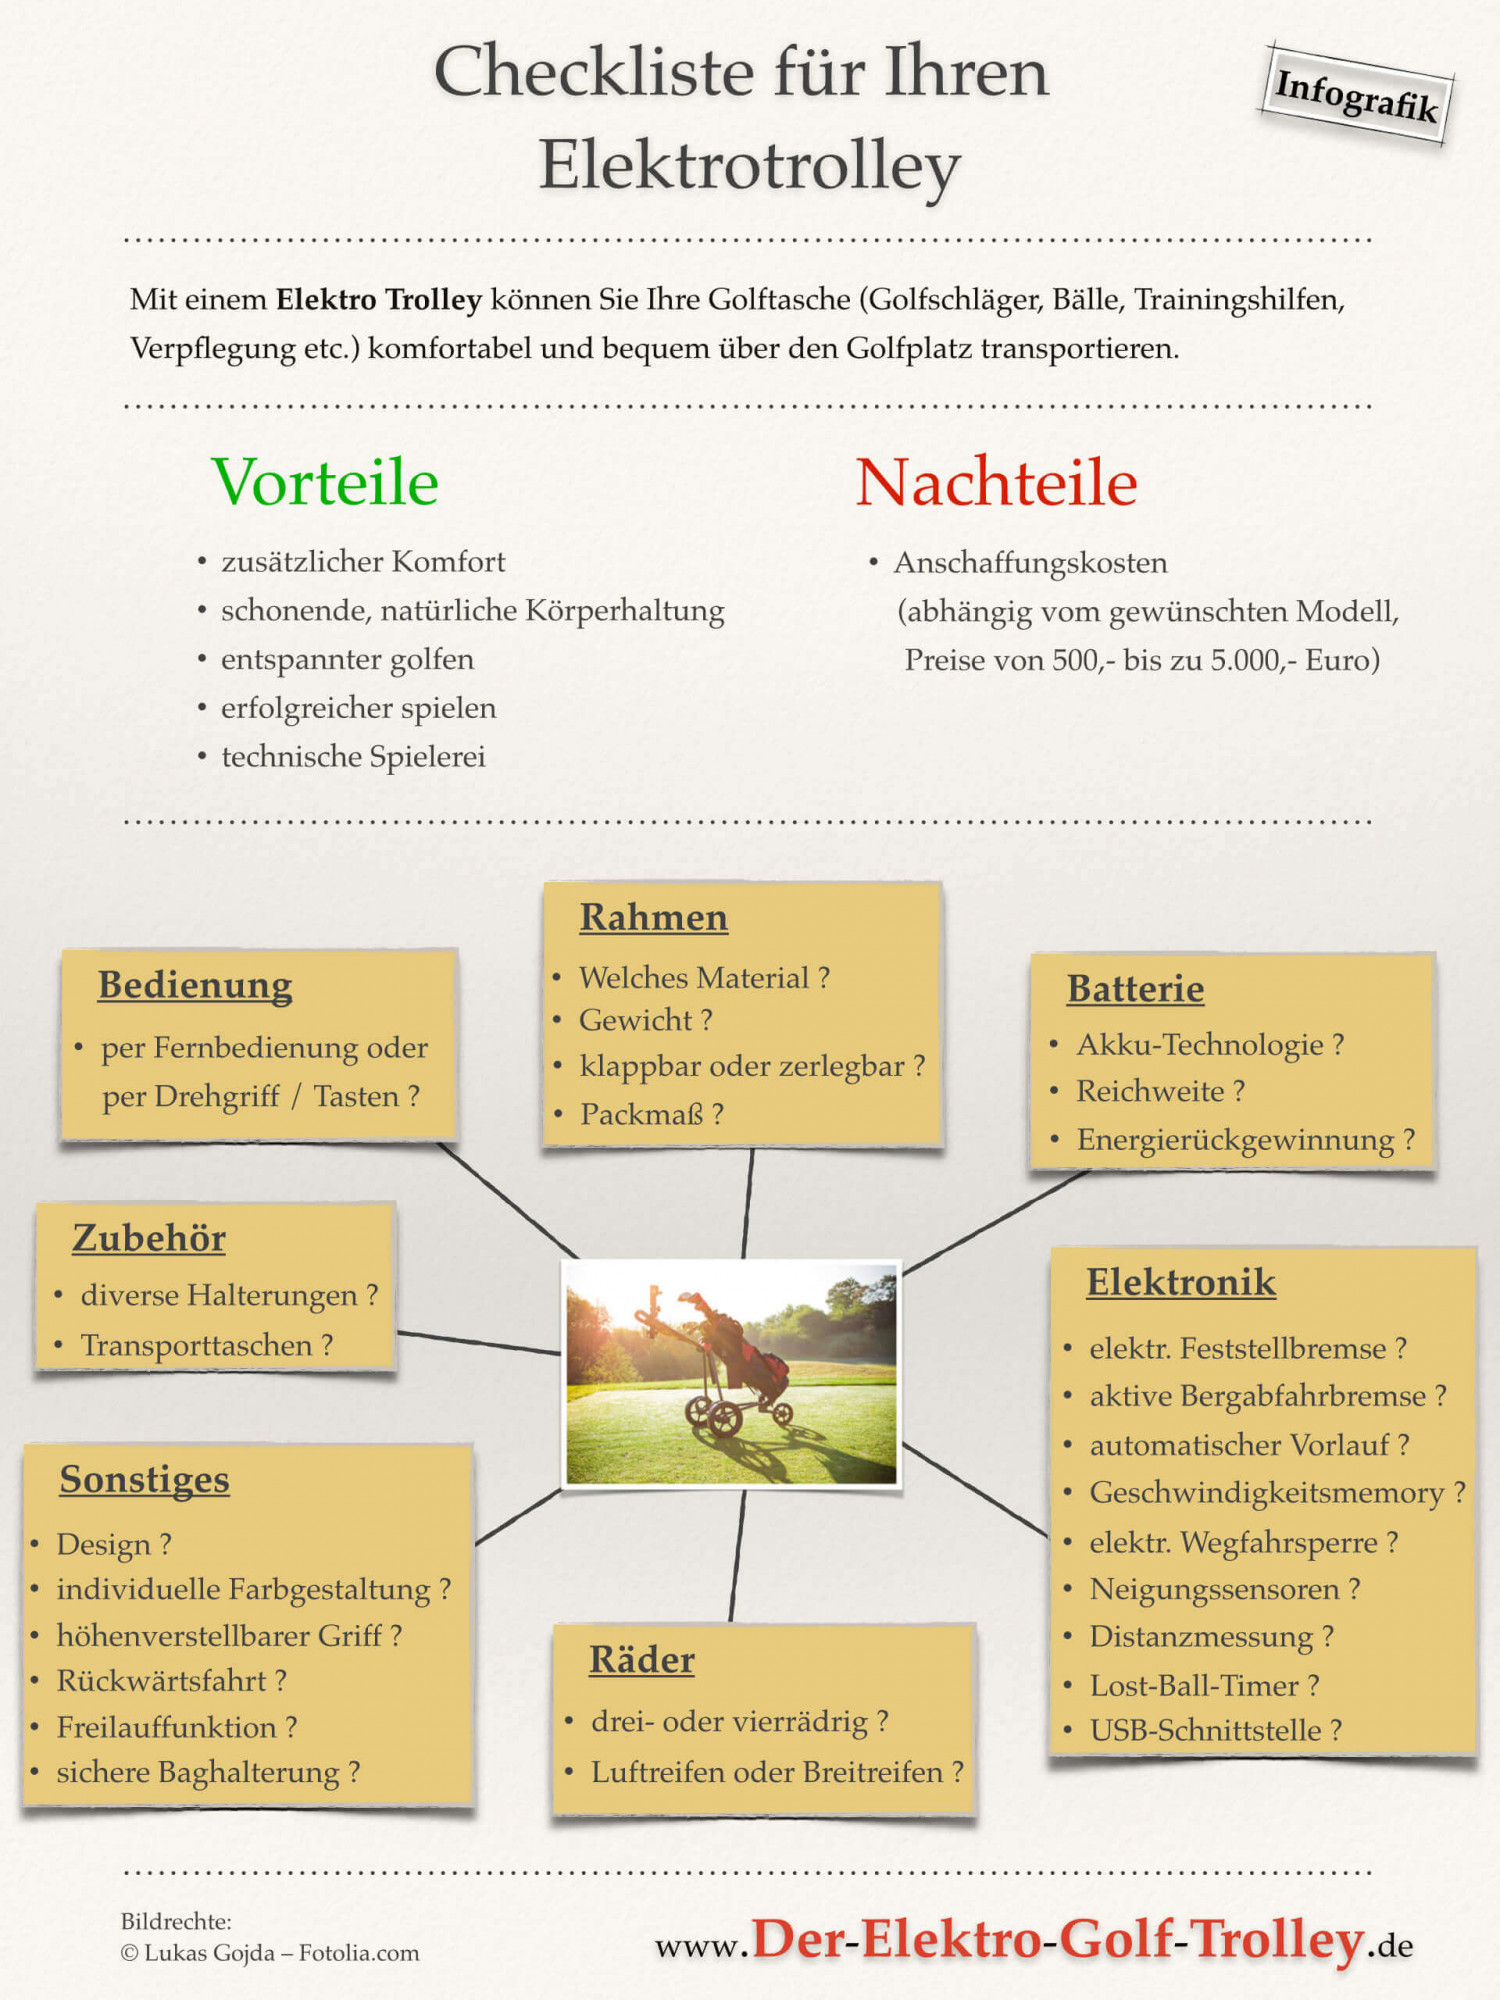 Elektrotrolley kaufen - Checkliste Infographic